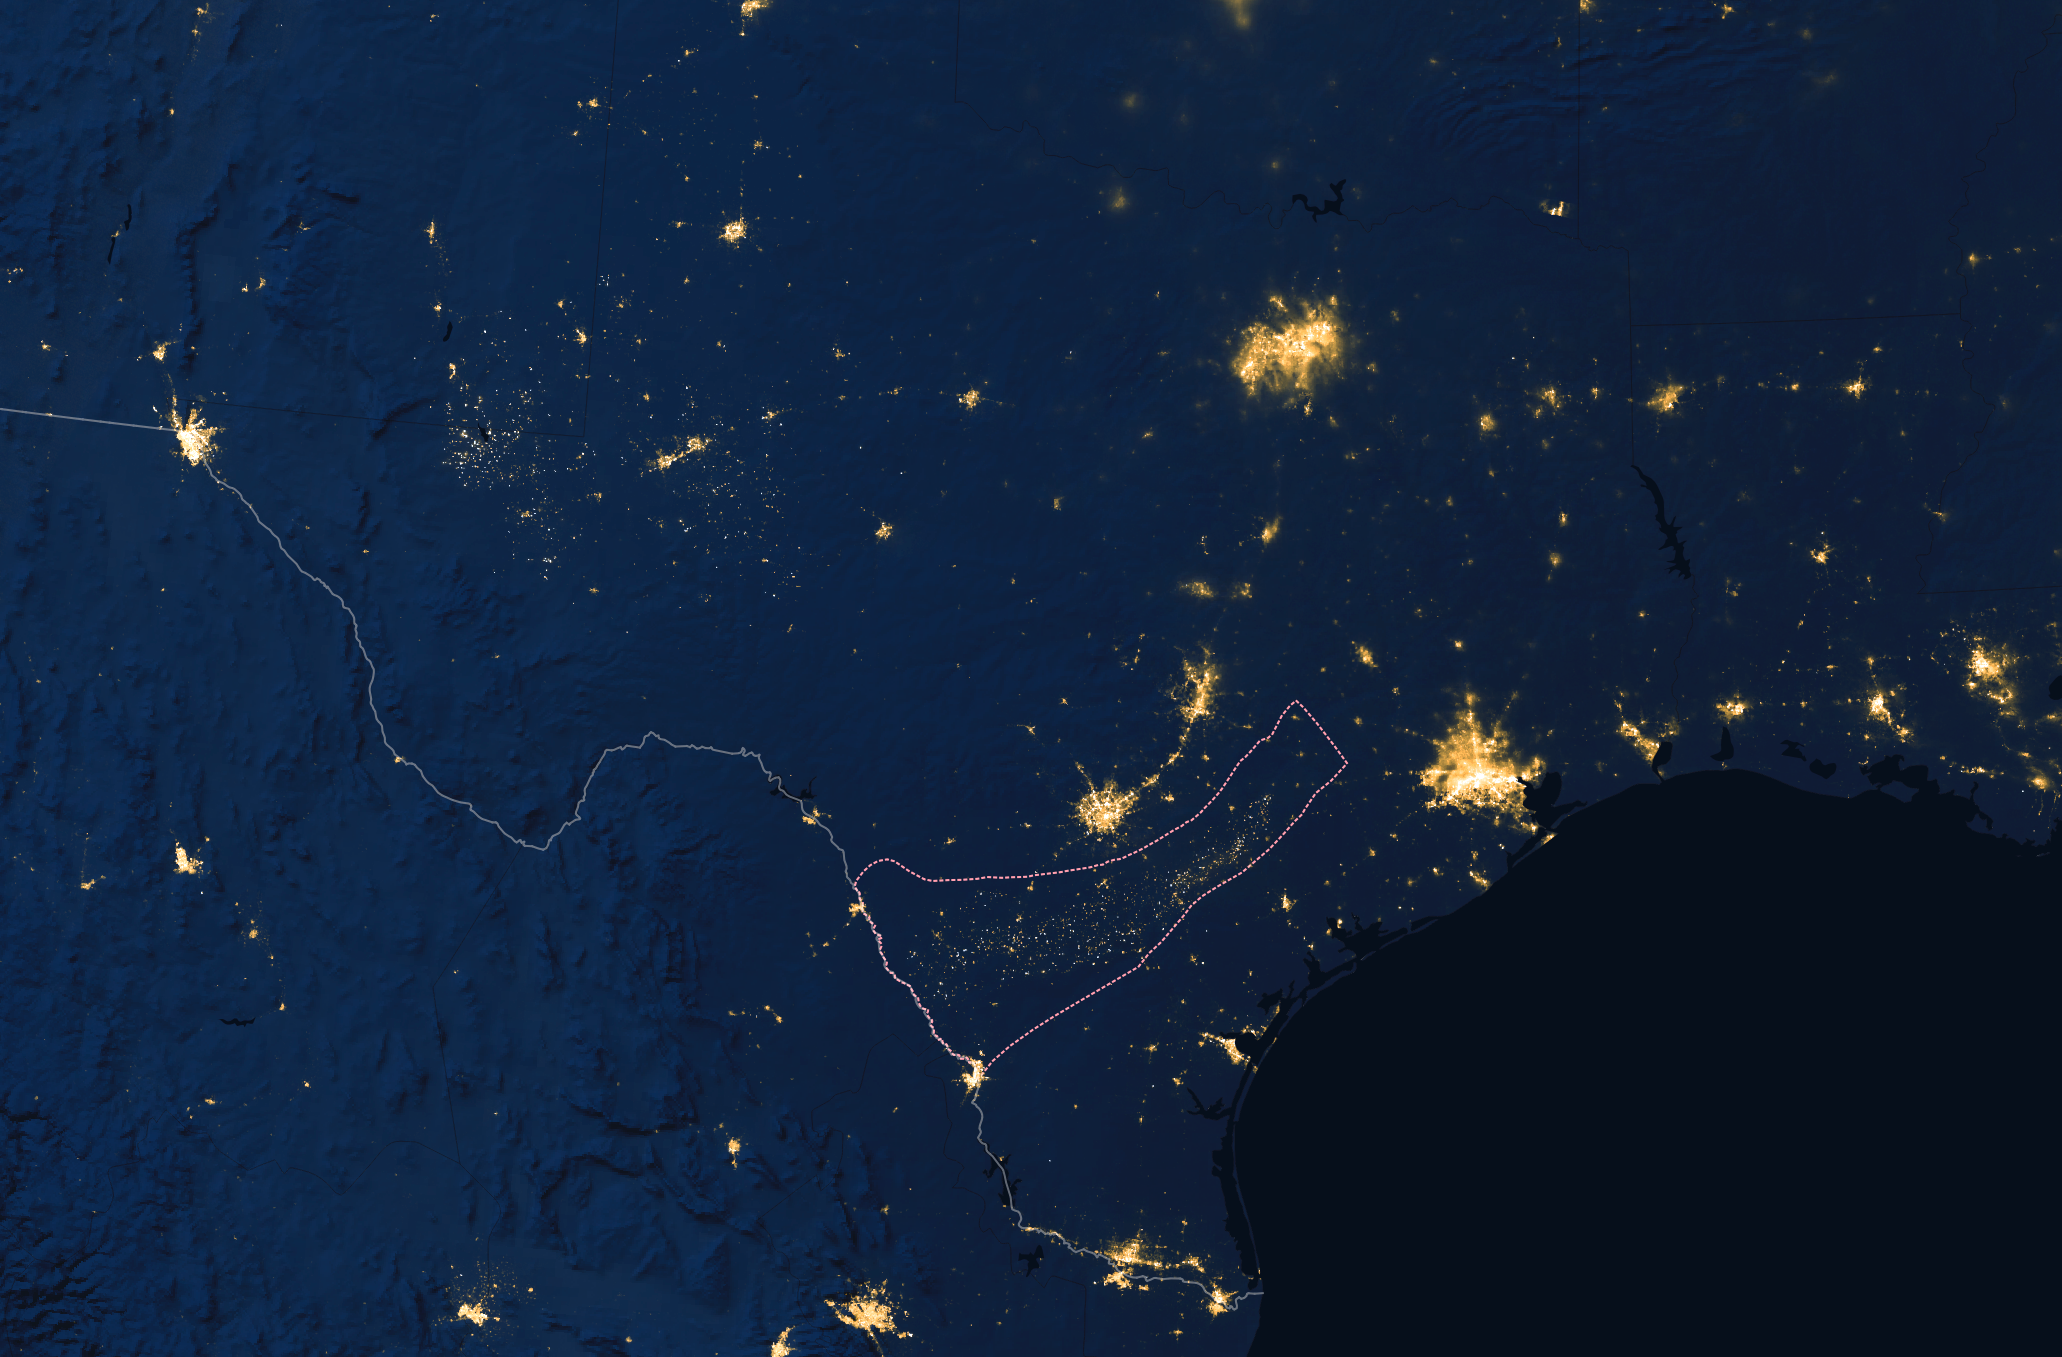 image of the Eagle Ford shale mining site captured at night by NASA's Visible Infrared Imaging Radiometer Suite (VIIRS)